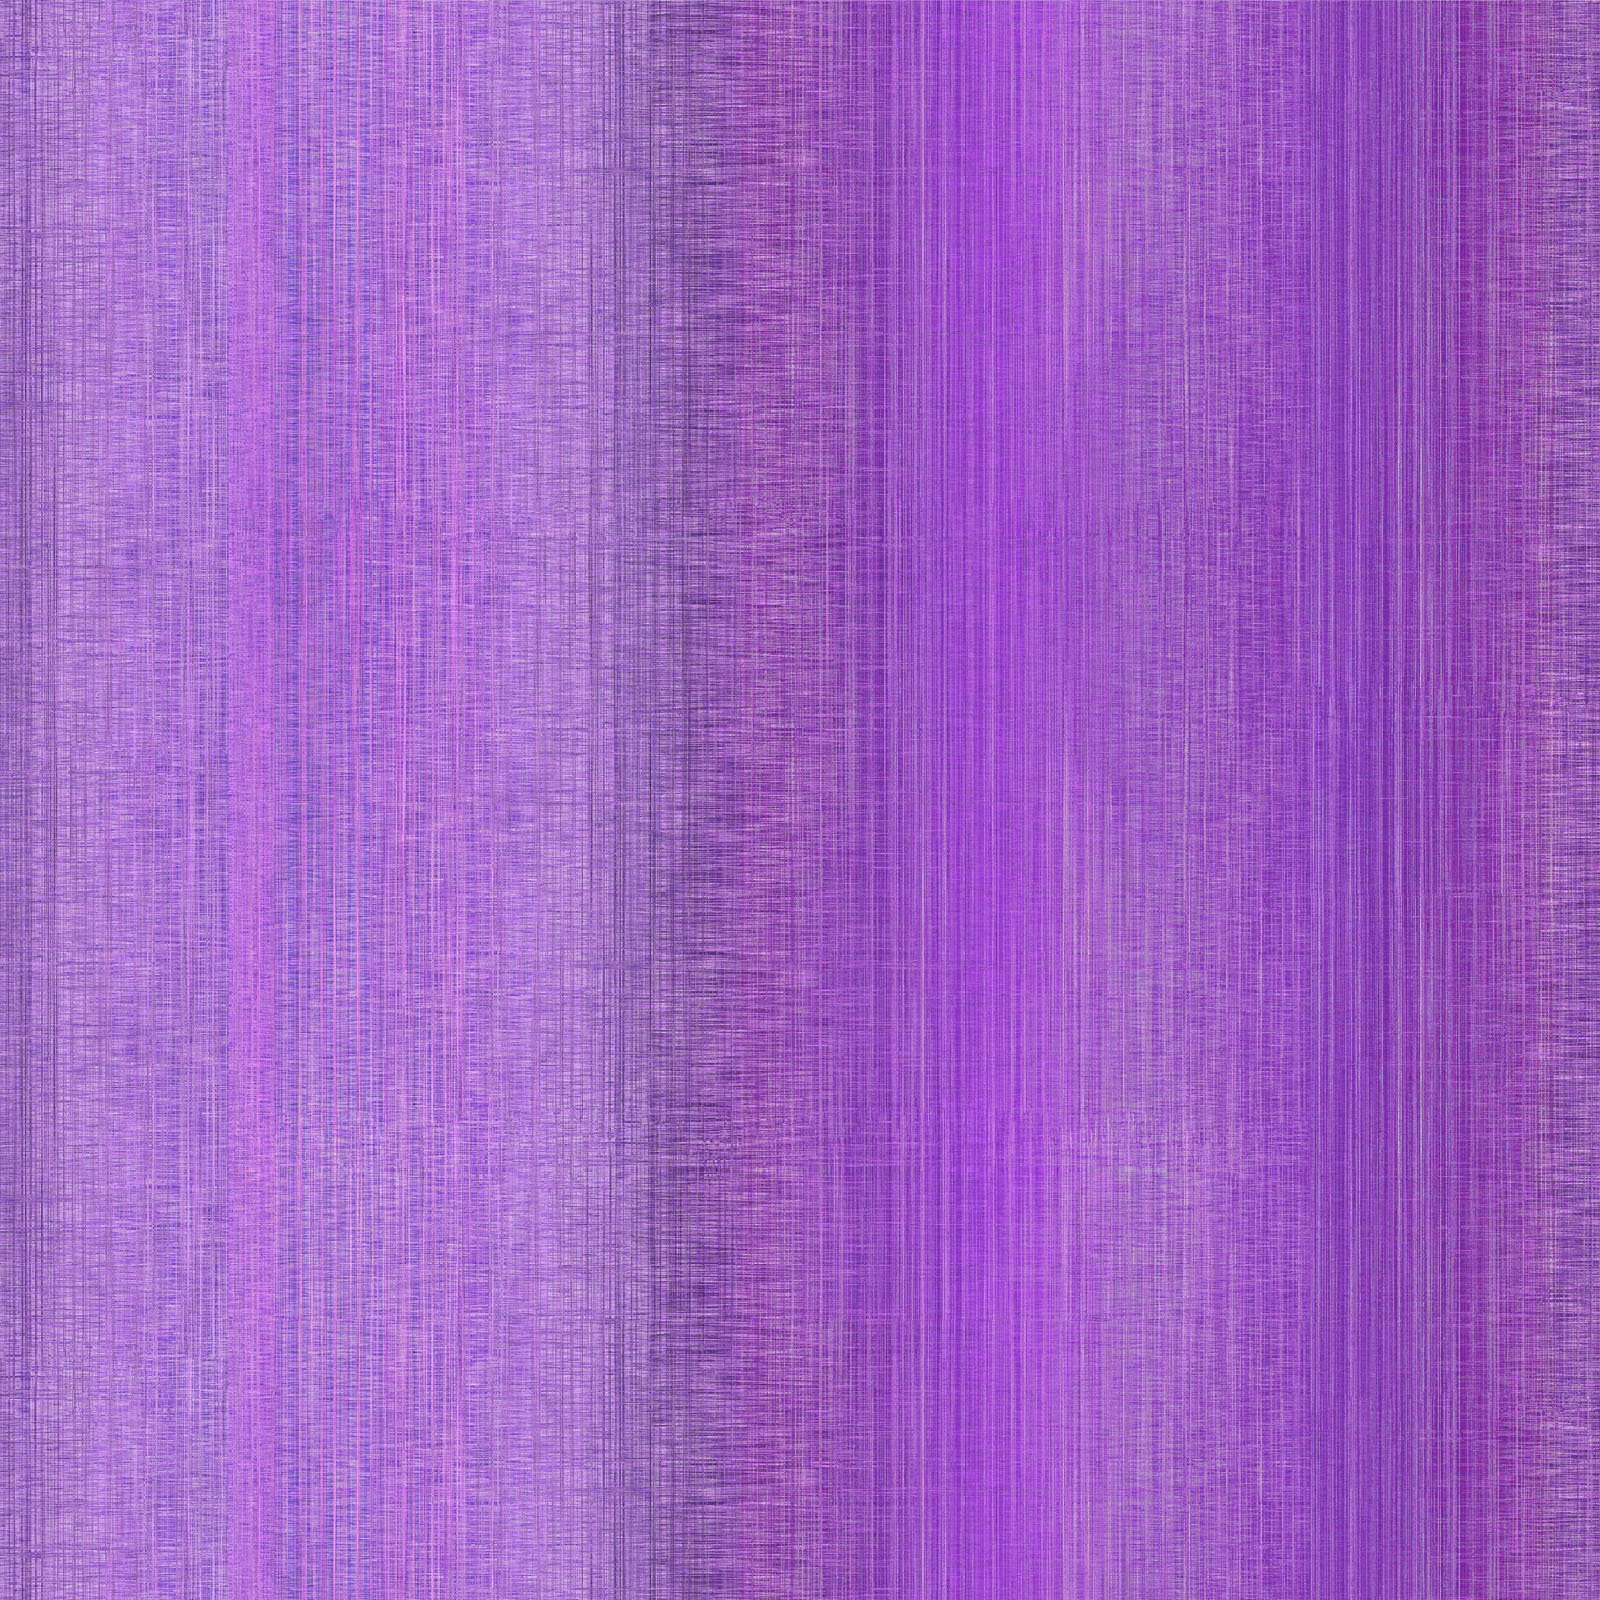 OMBR-4498 C - OMBRE 108 DIGITAL BY P&B BOUTIQUE PURPLE - ARRIVING IN AUGUST 2021